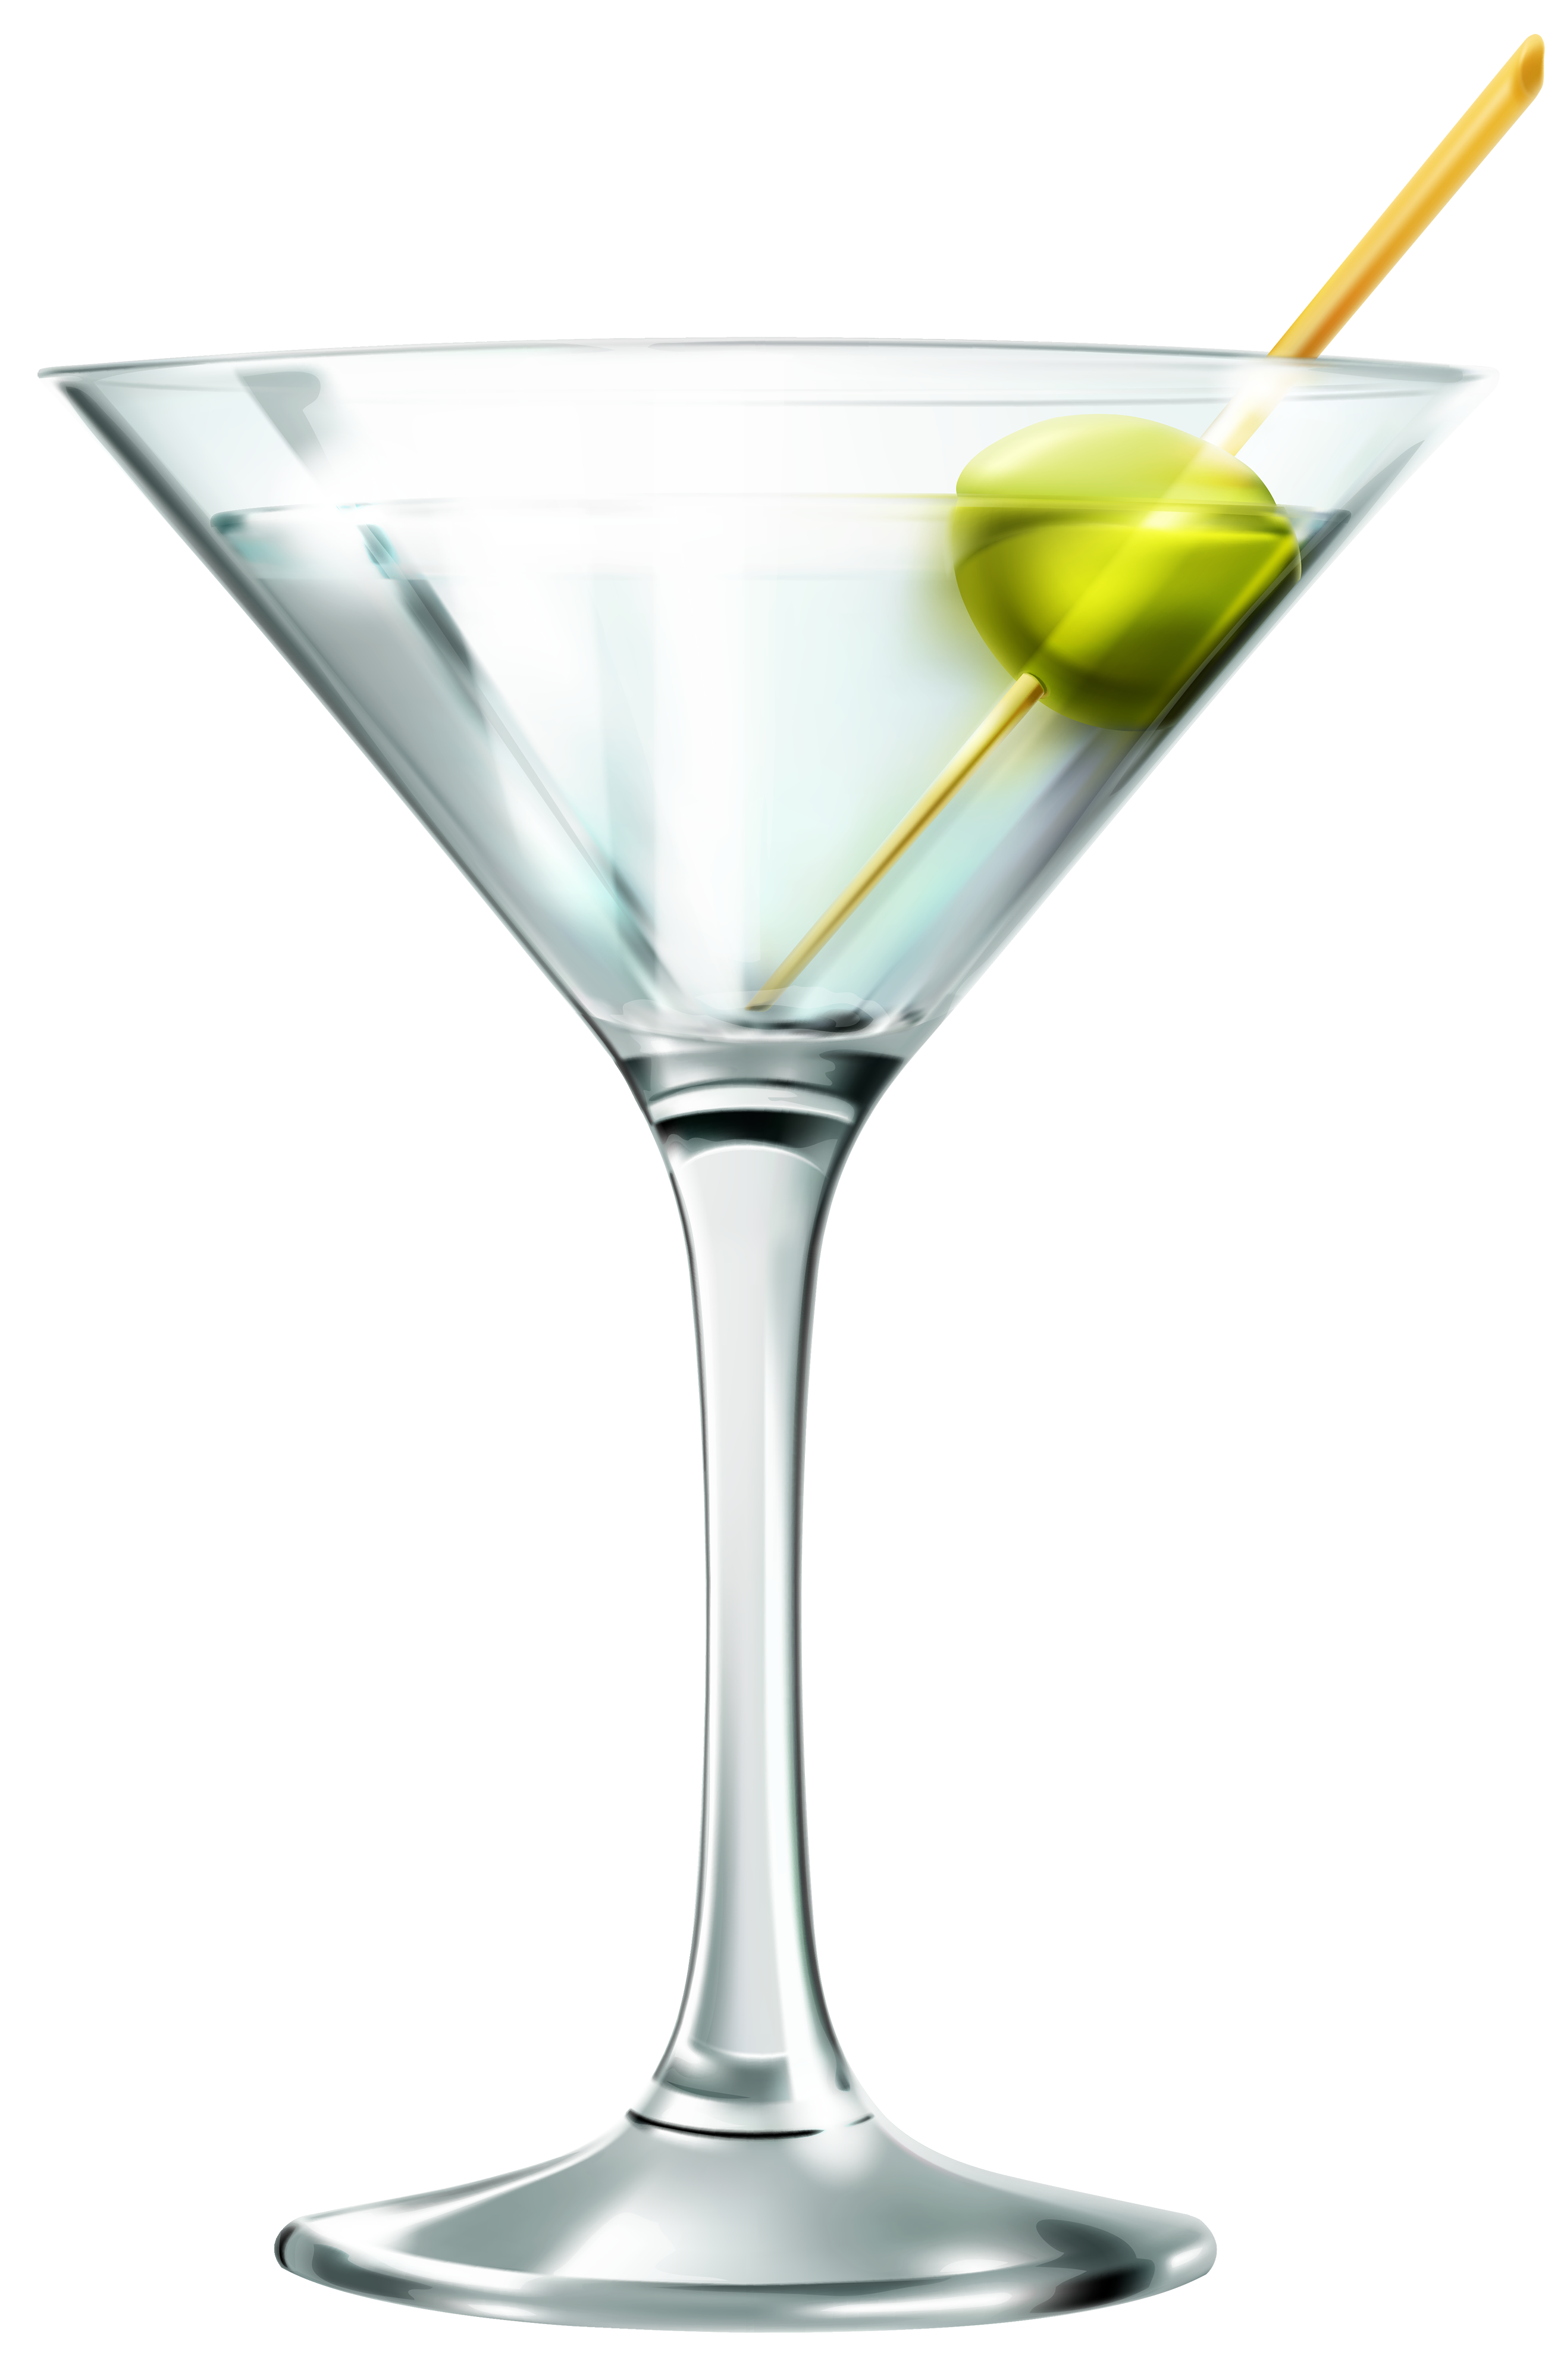 clipart library stock Transparent glass png best. Martini clipart.